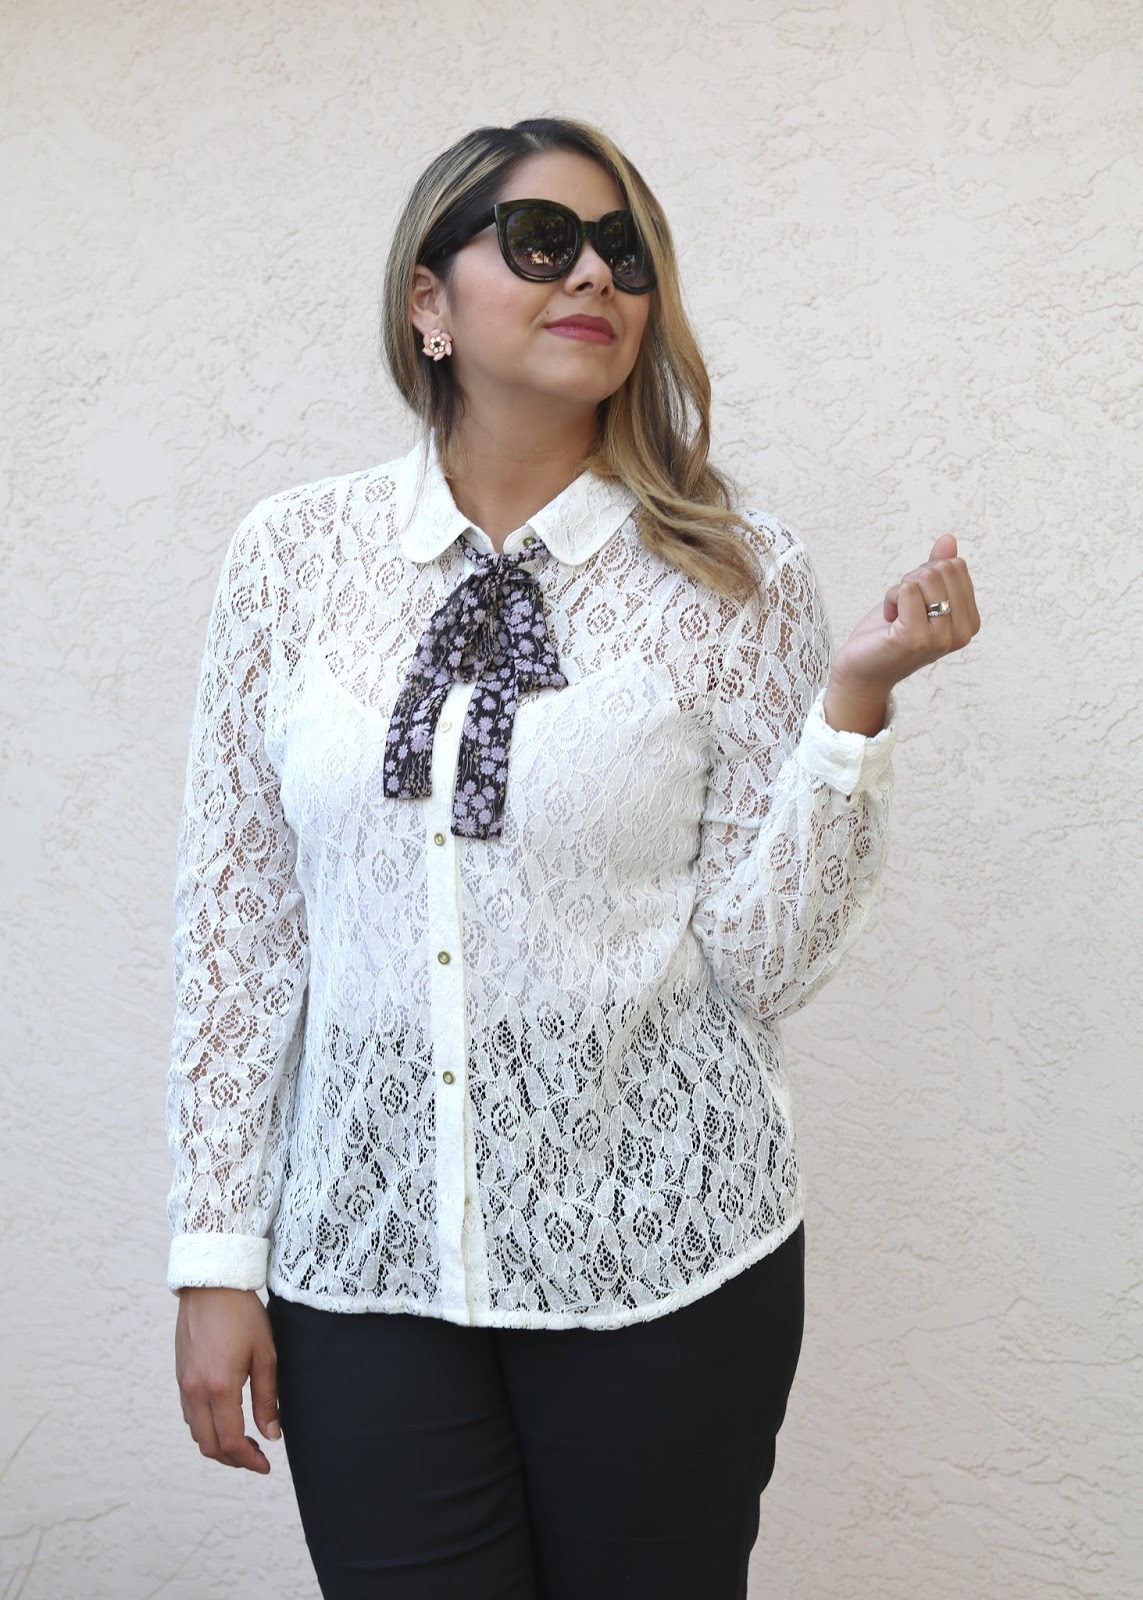 chic bloggers, socal blogger, latina style, what to wear to look cute